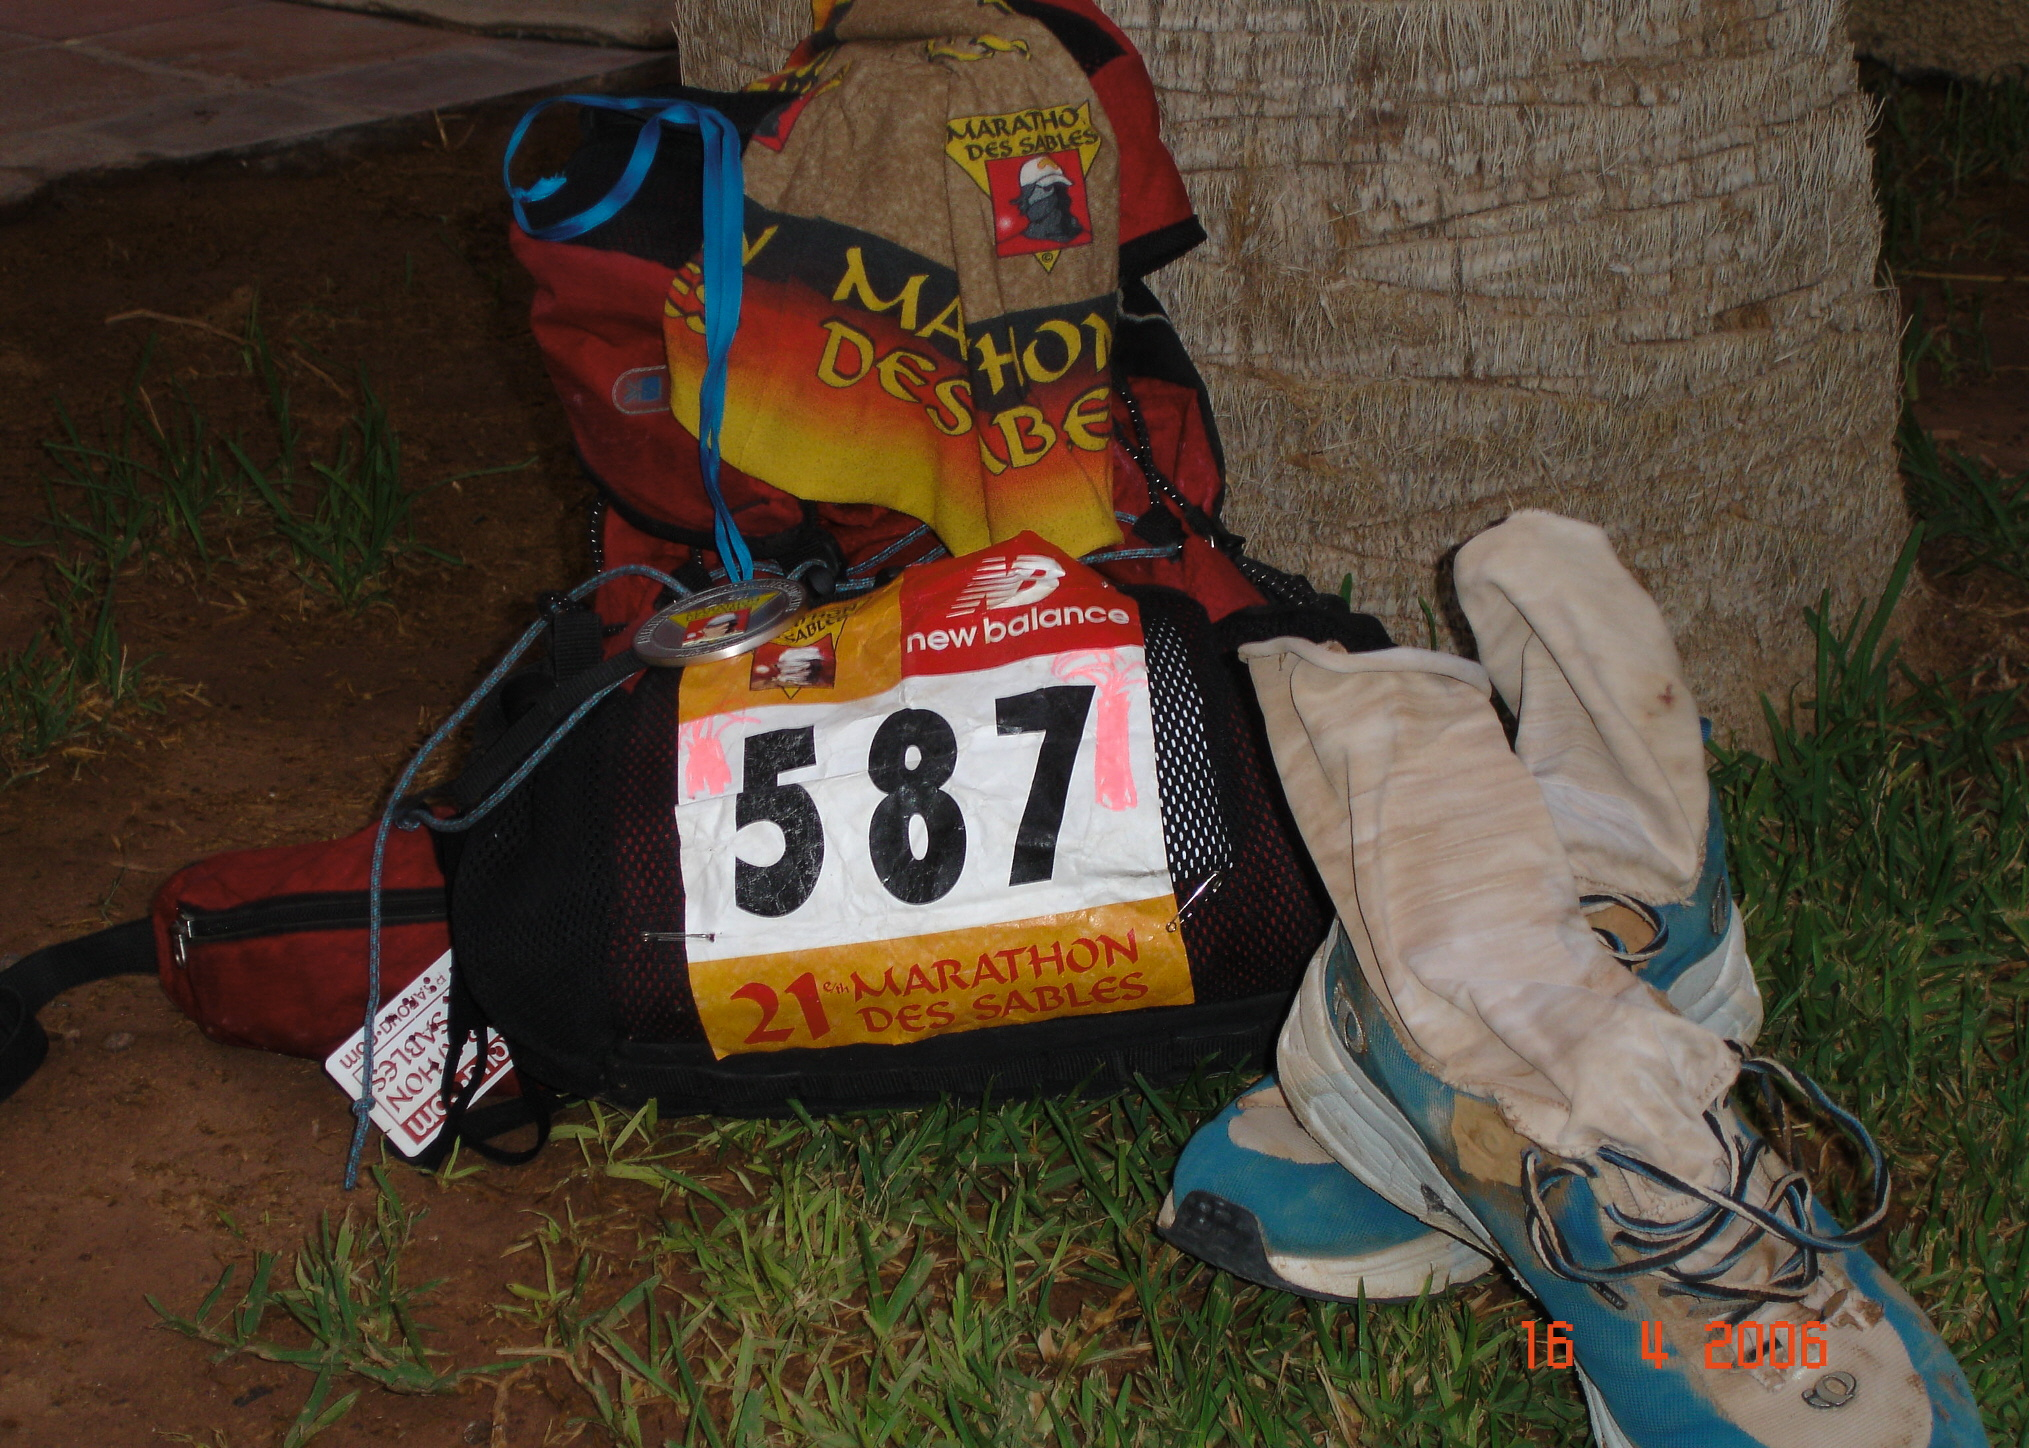 Russell's modified kit from Marathon des Sables